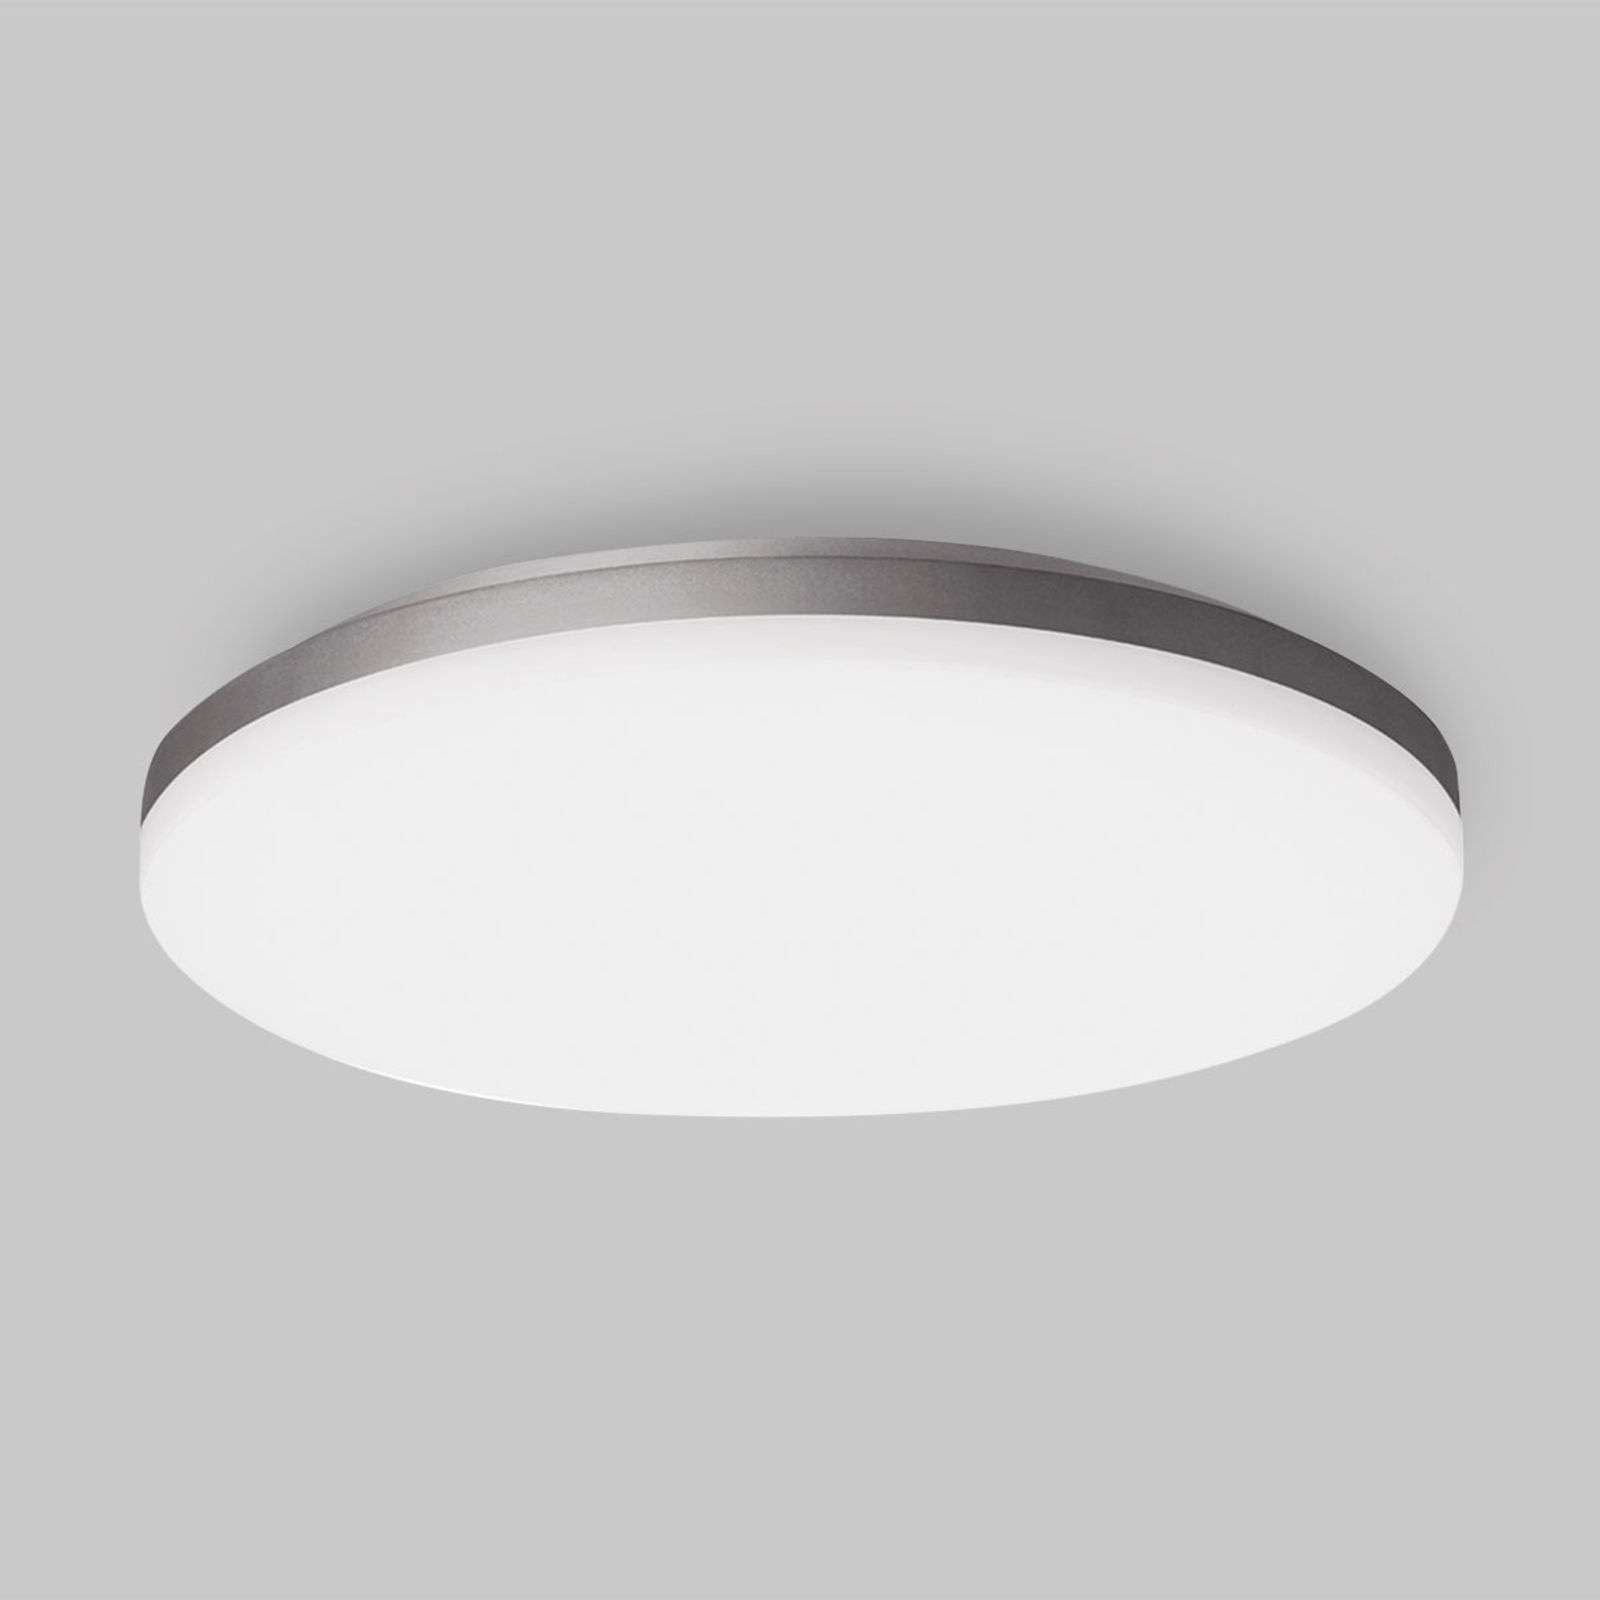 Applique WL270 LED opale 2x55° 3 000 K